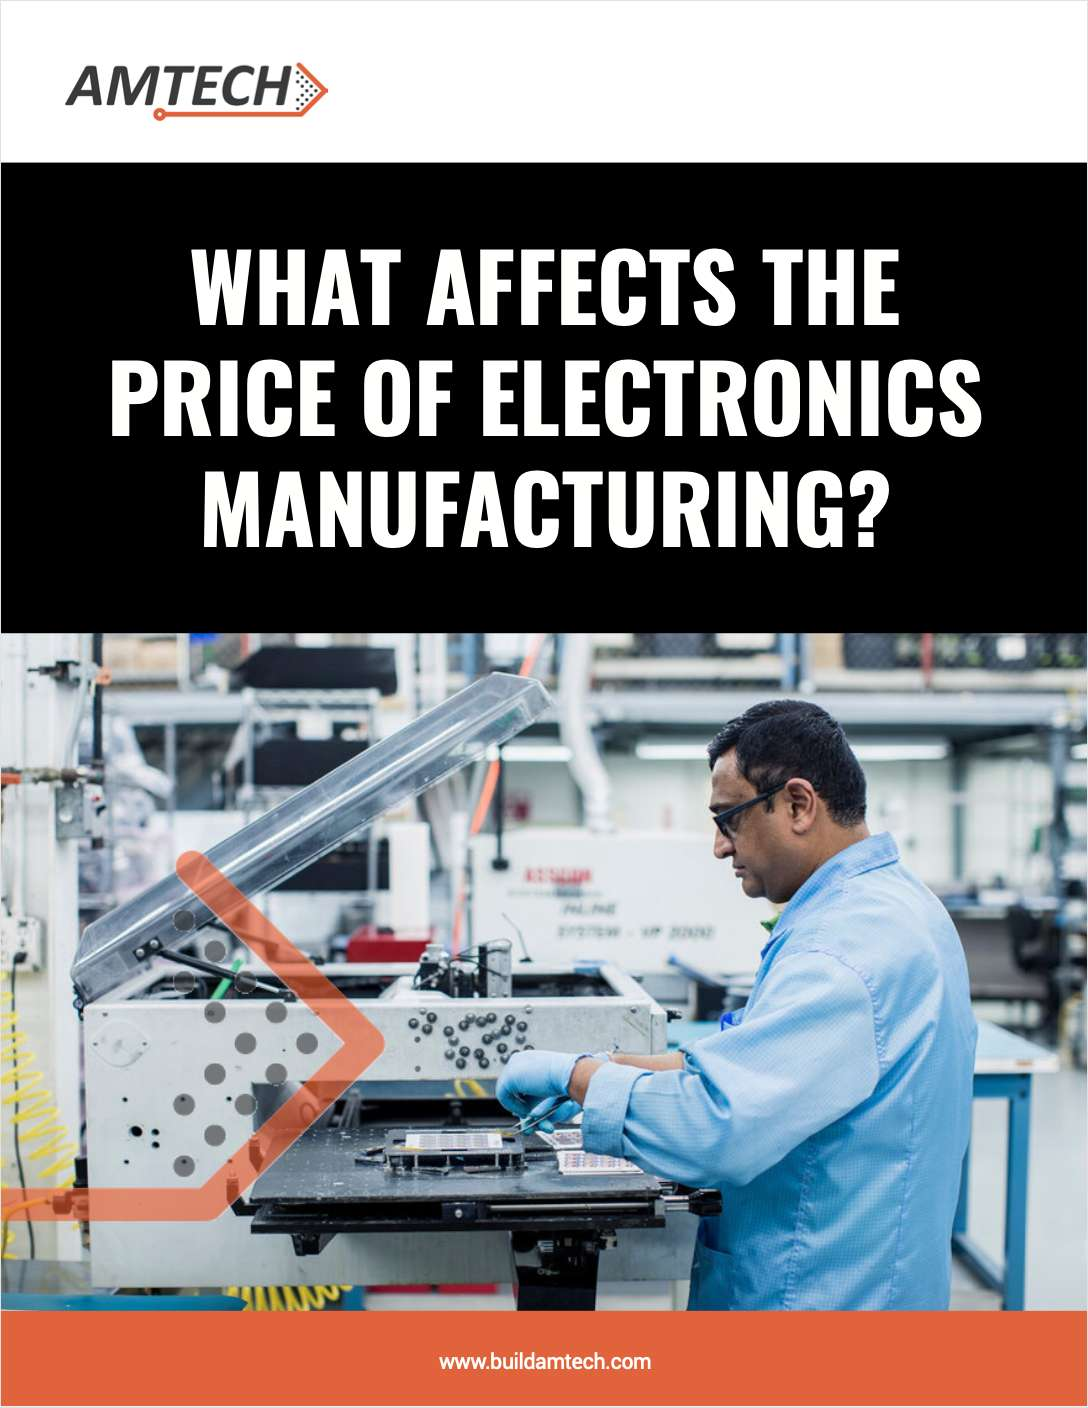 What Affects the Price of Electronics Manufacturing?